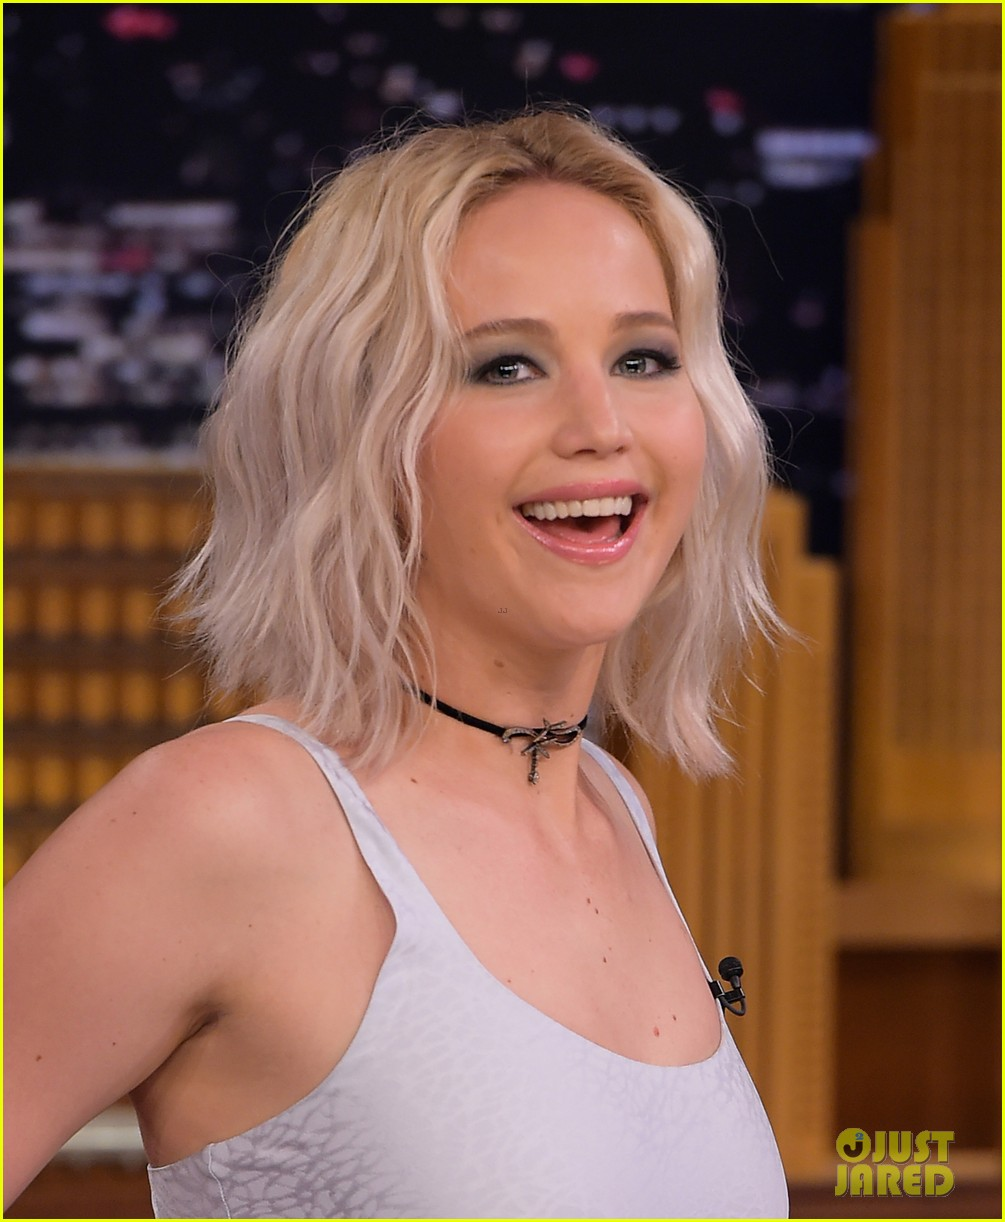 http://cdn02.cdn.justjared.com/wp-content/uploads/2016/05/lawrence-tconfessions/jennifer-lawrence-plays-true-confessions-with-john-oliver-07.jpg